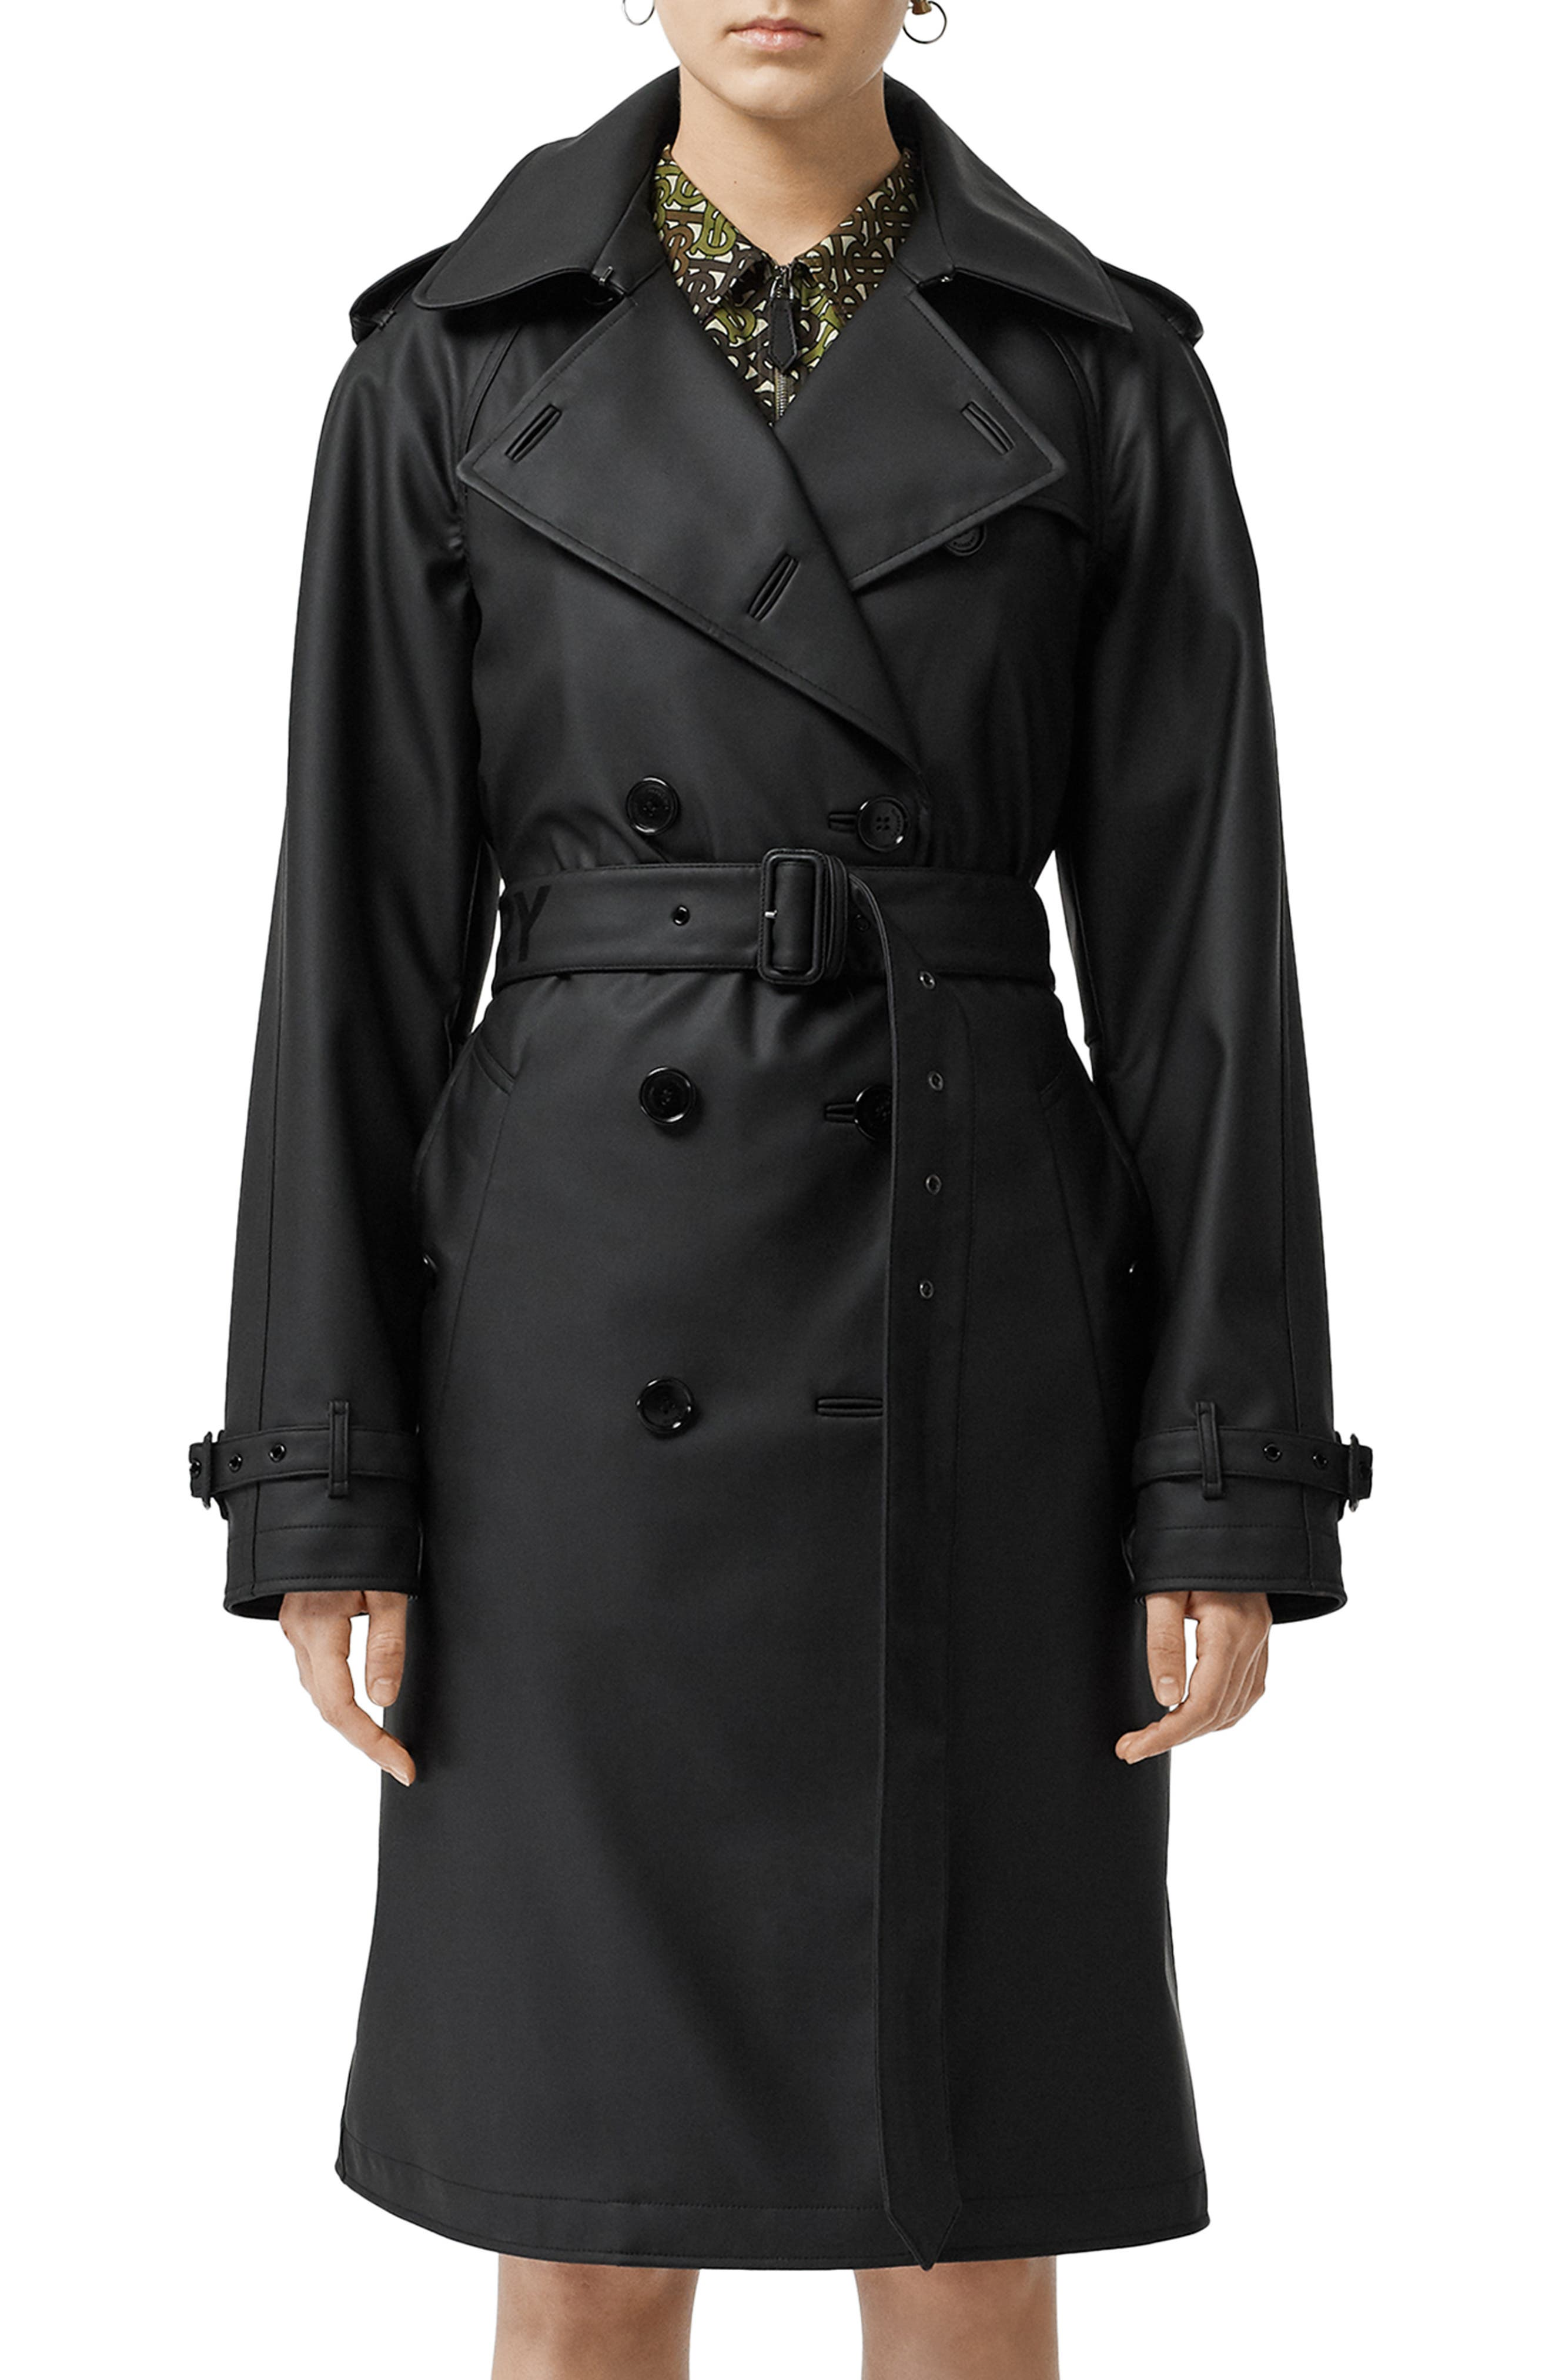 BURBERRY Curradine Waterproof Rubberized Trench Coat, Main, color, BLACK / WHITE